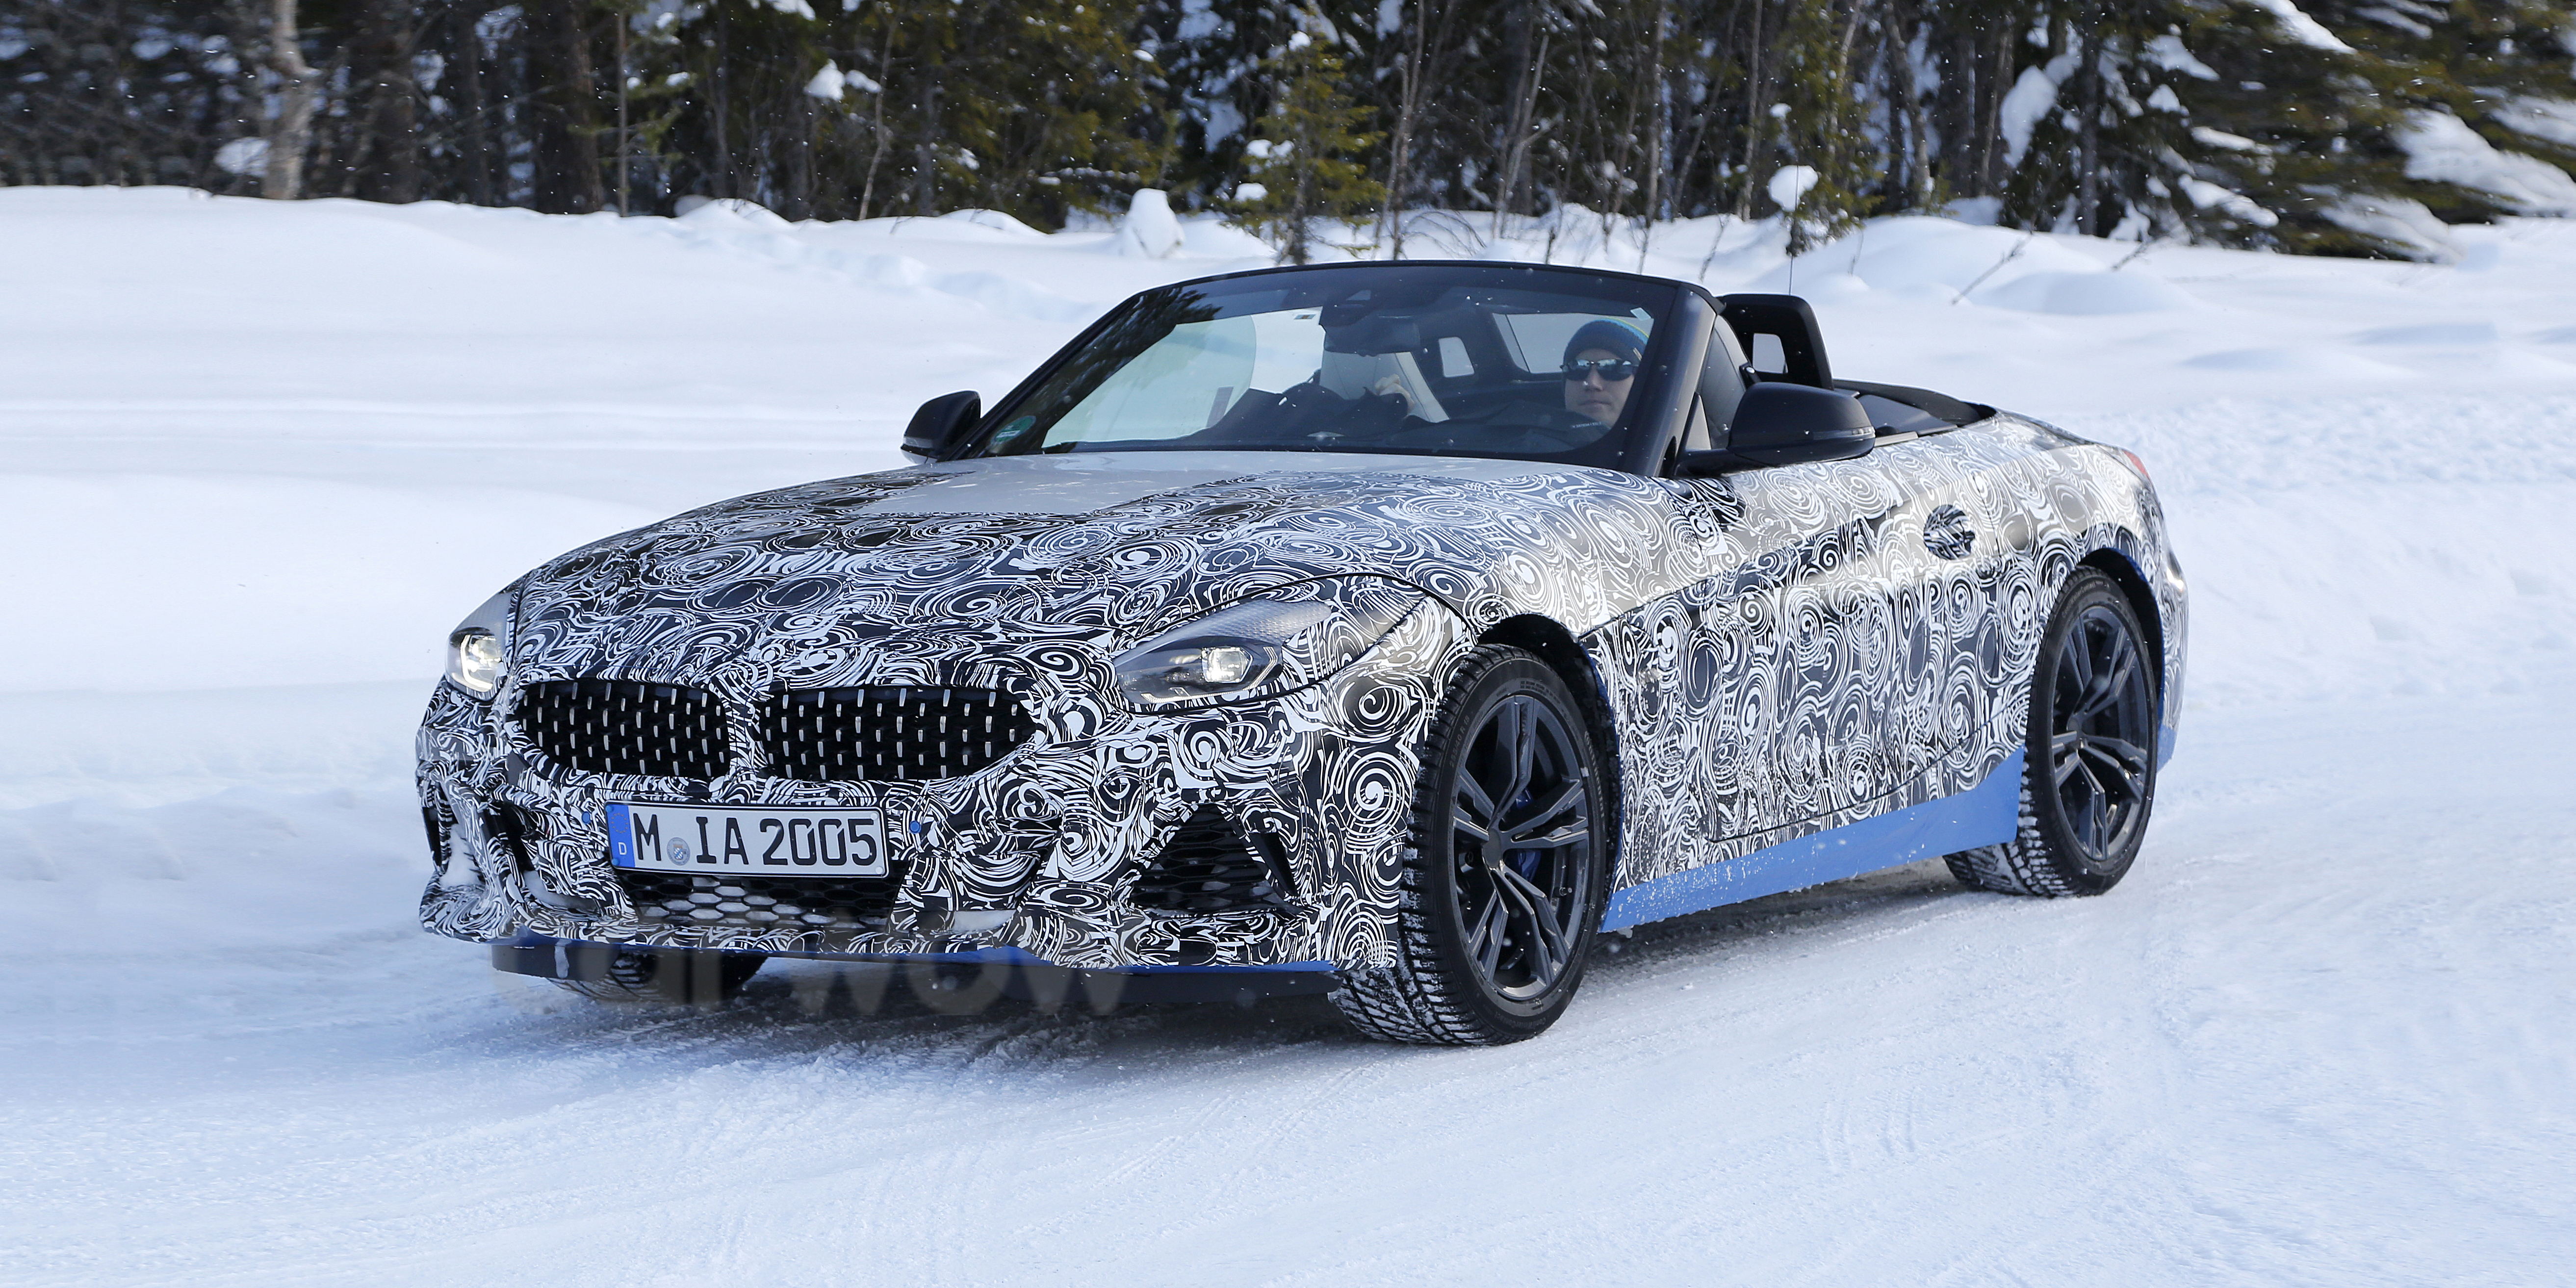 review reports dsc infamous the bmw ownership team of bhp forum initial used test drives lucifer